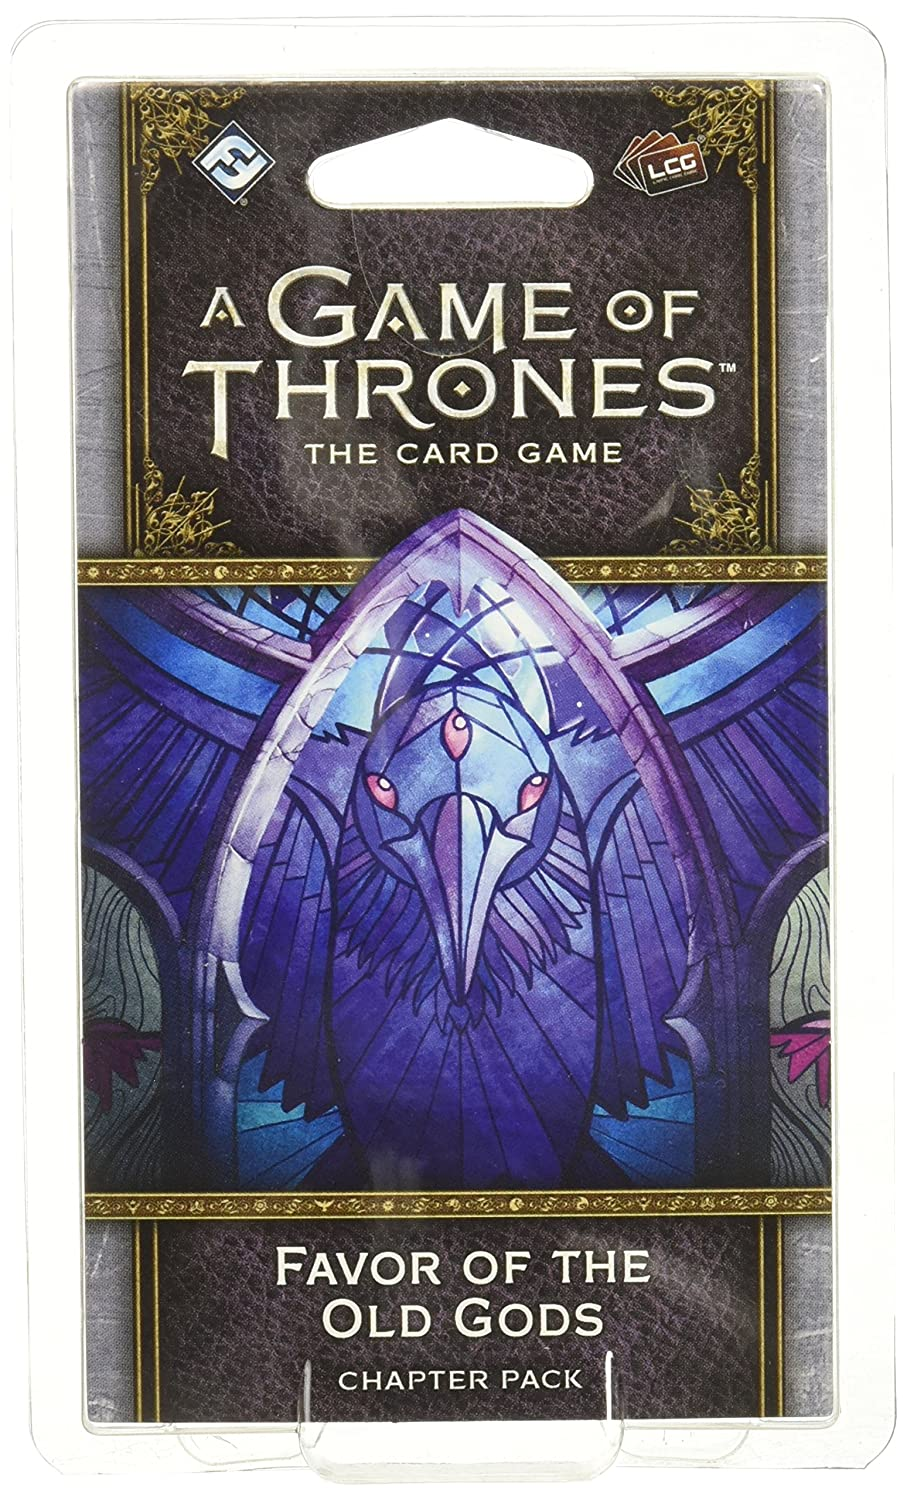 Amazon.com: A Game of Thrones LCG Second Edition: Favor of ...